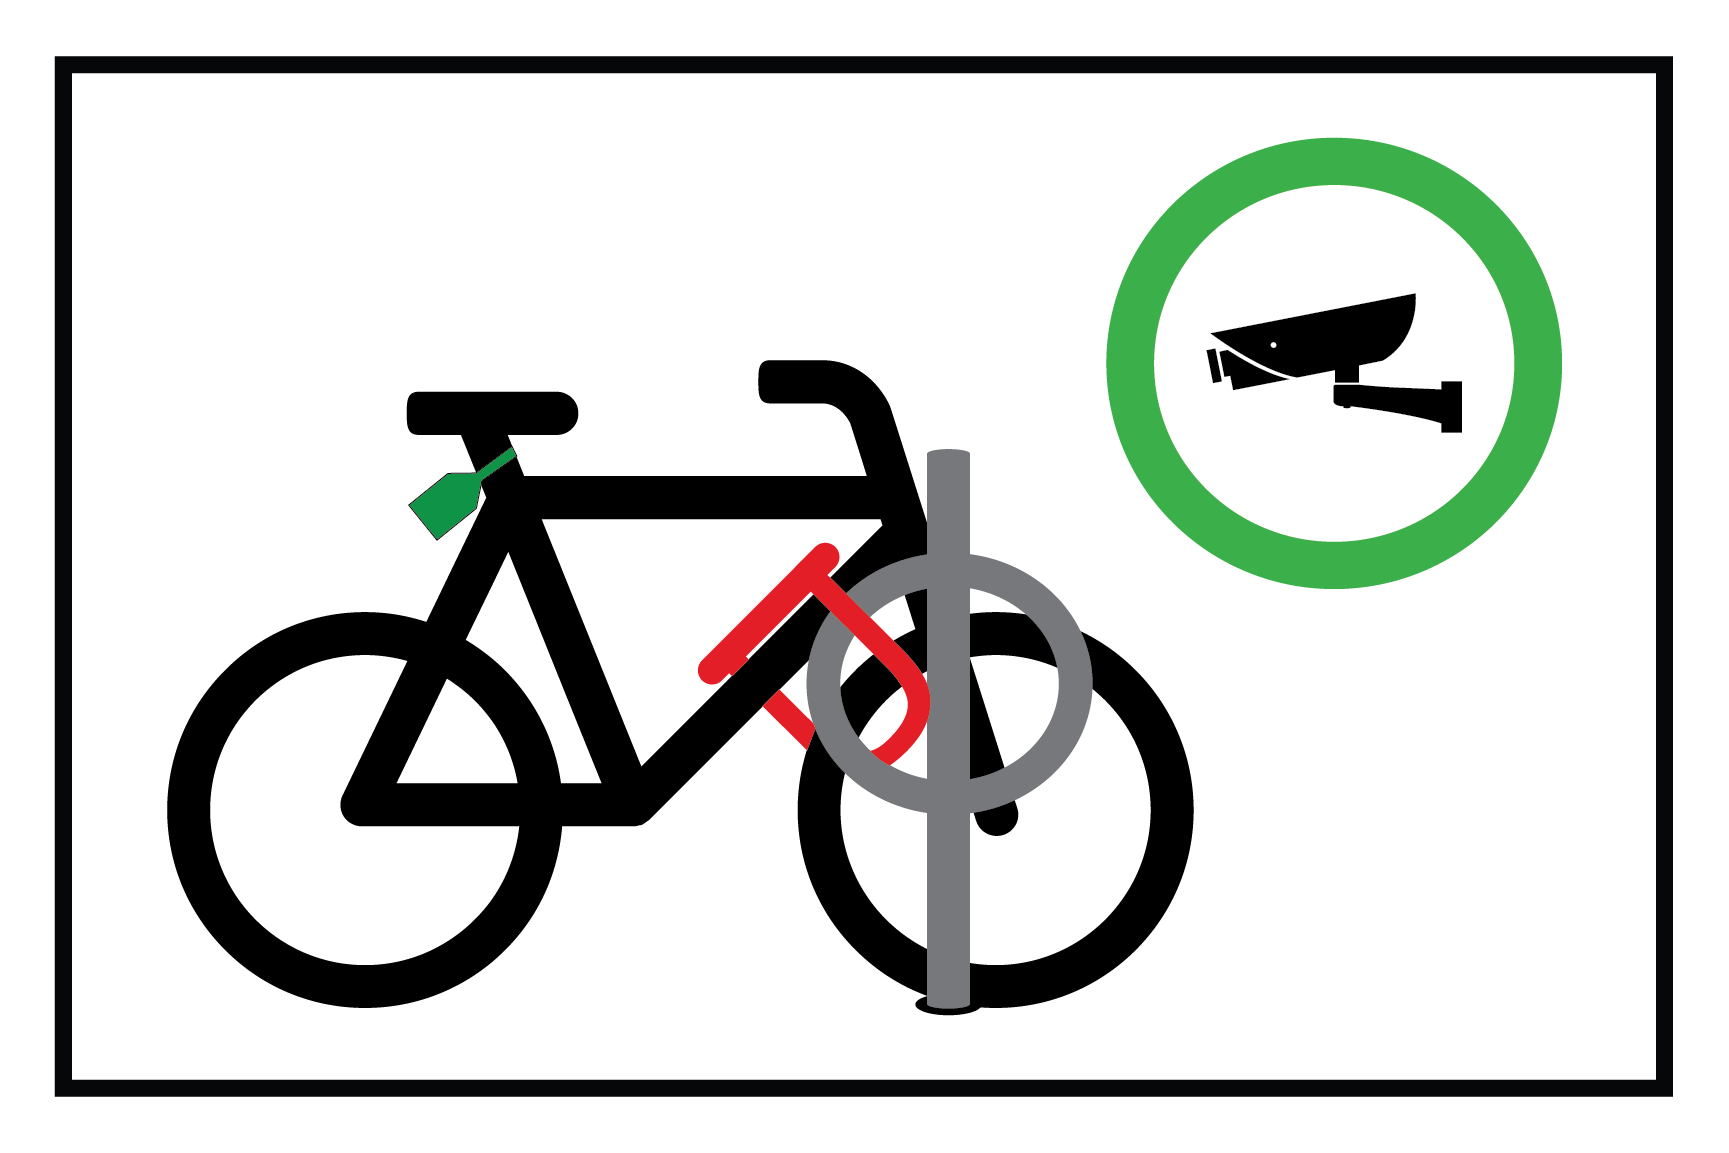 A diagram showing how to securely lock a bike inside a Bikesecure shelter.